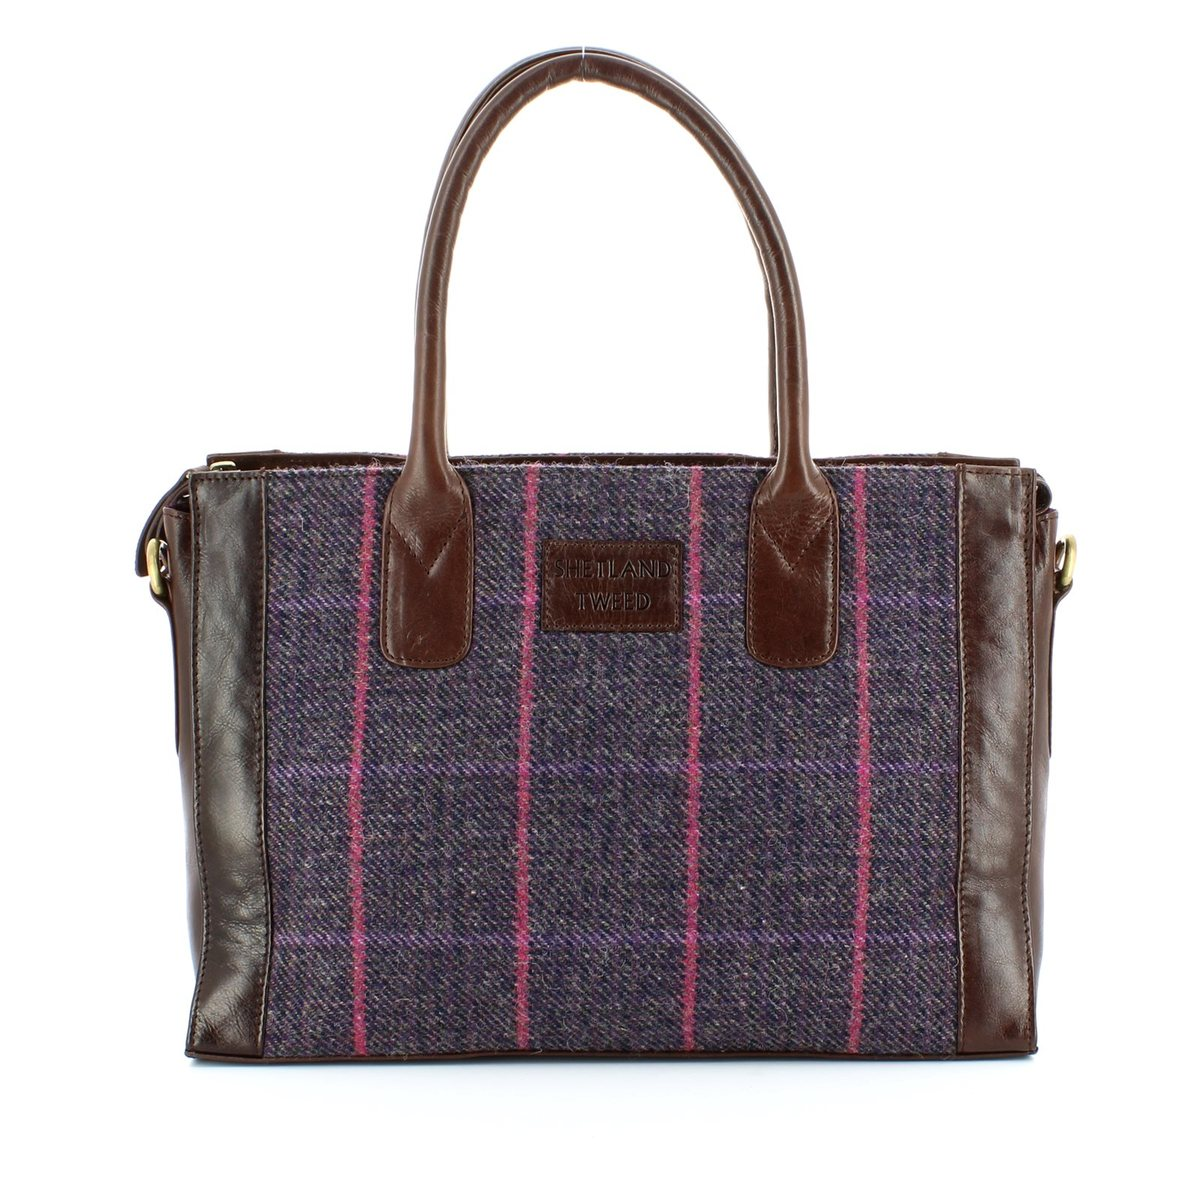 New Shetland Tweed Handbag – Now In!